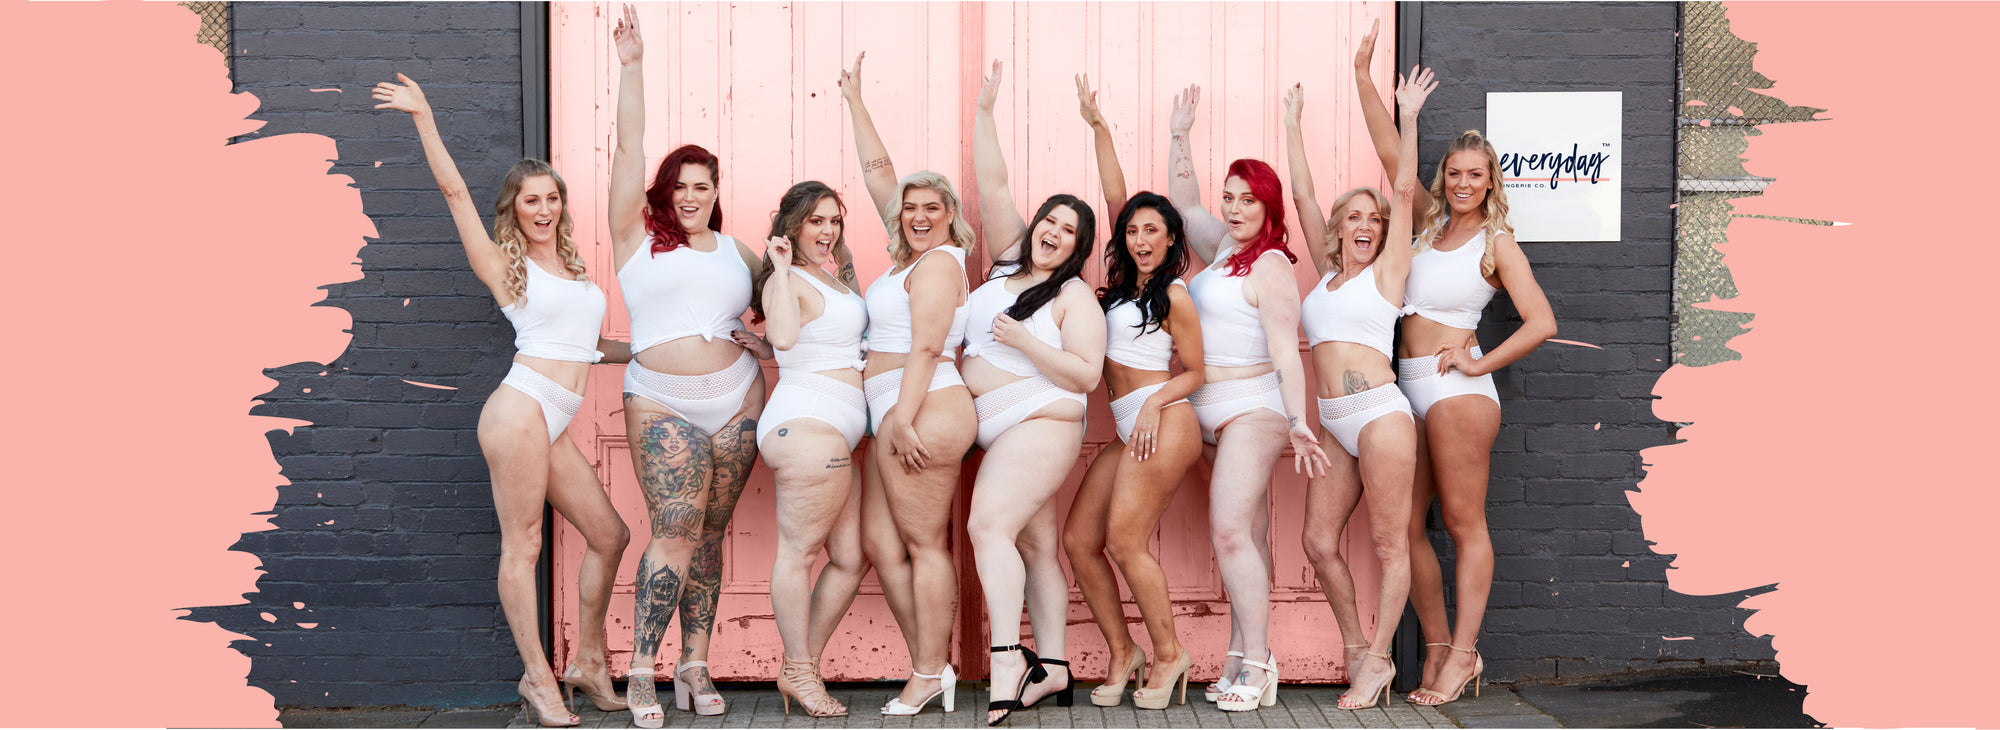 Image of Everyday Lingerie Co. Everyday Woman Models